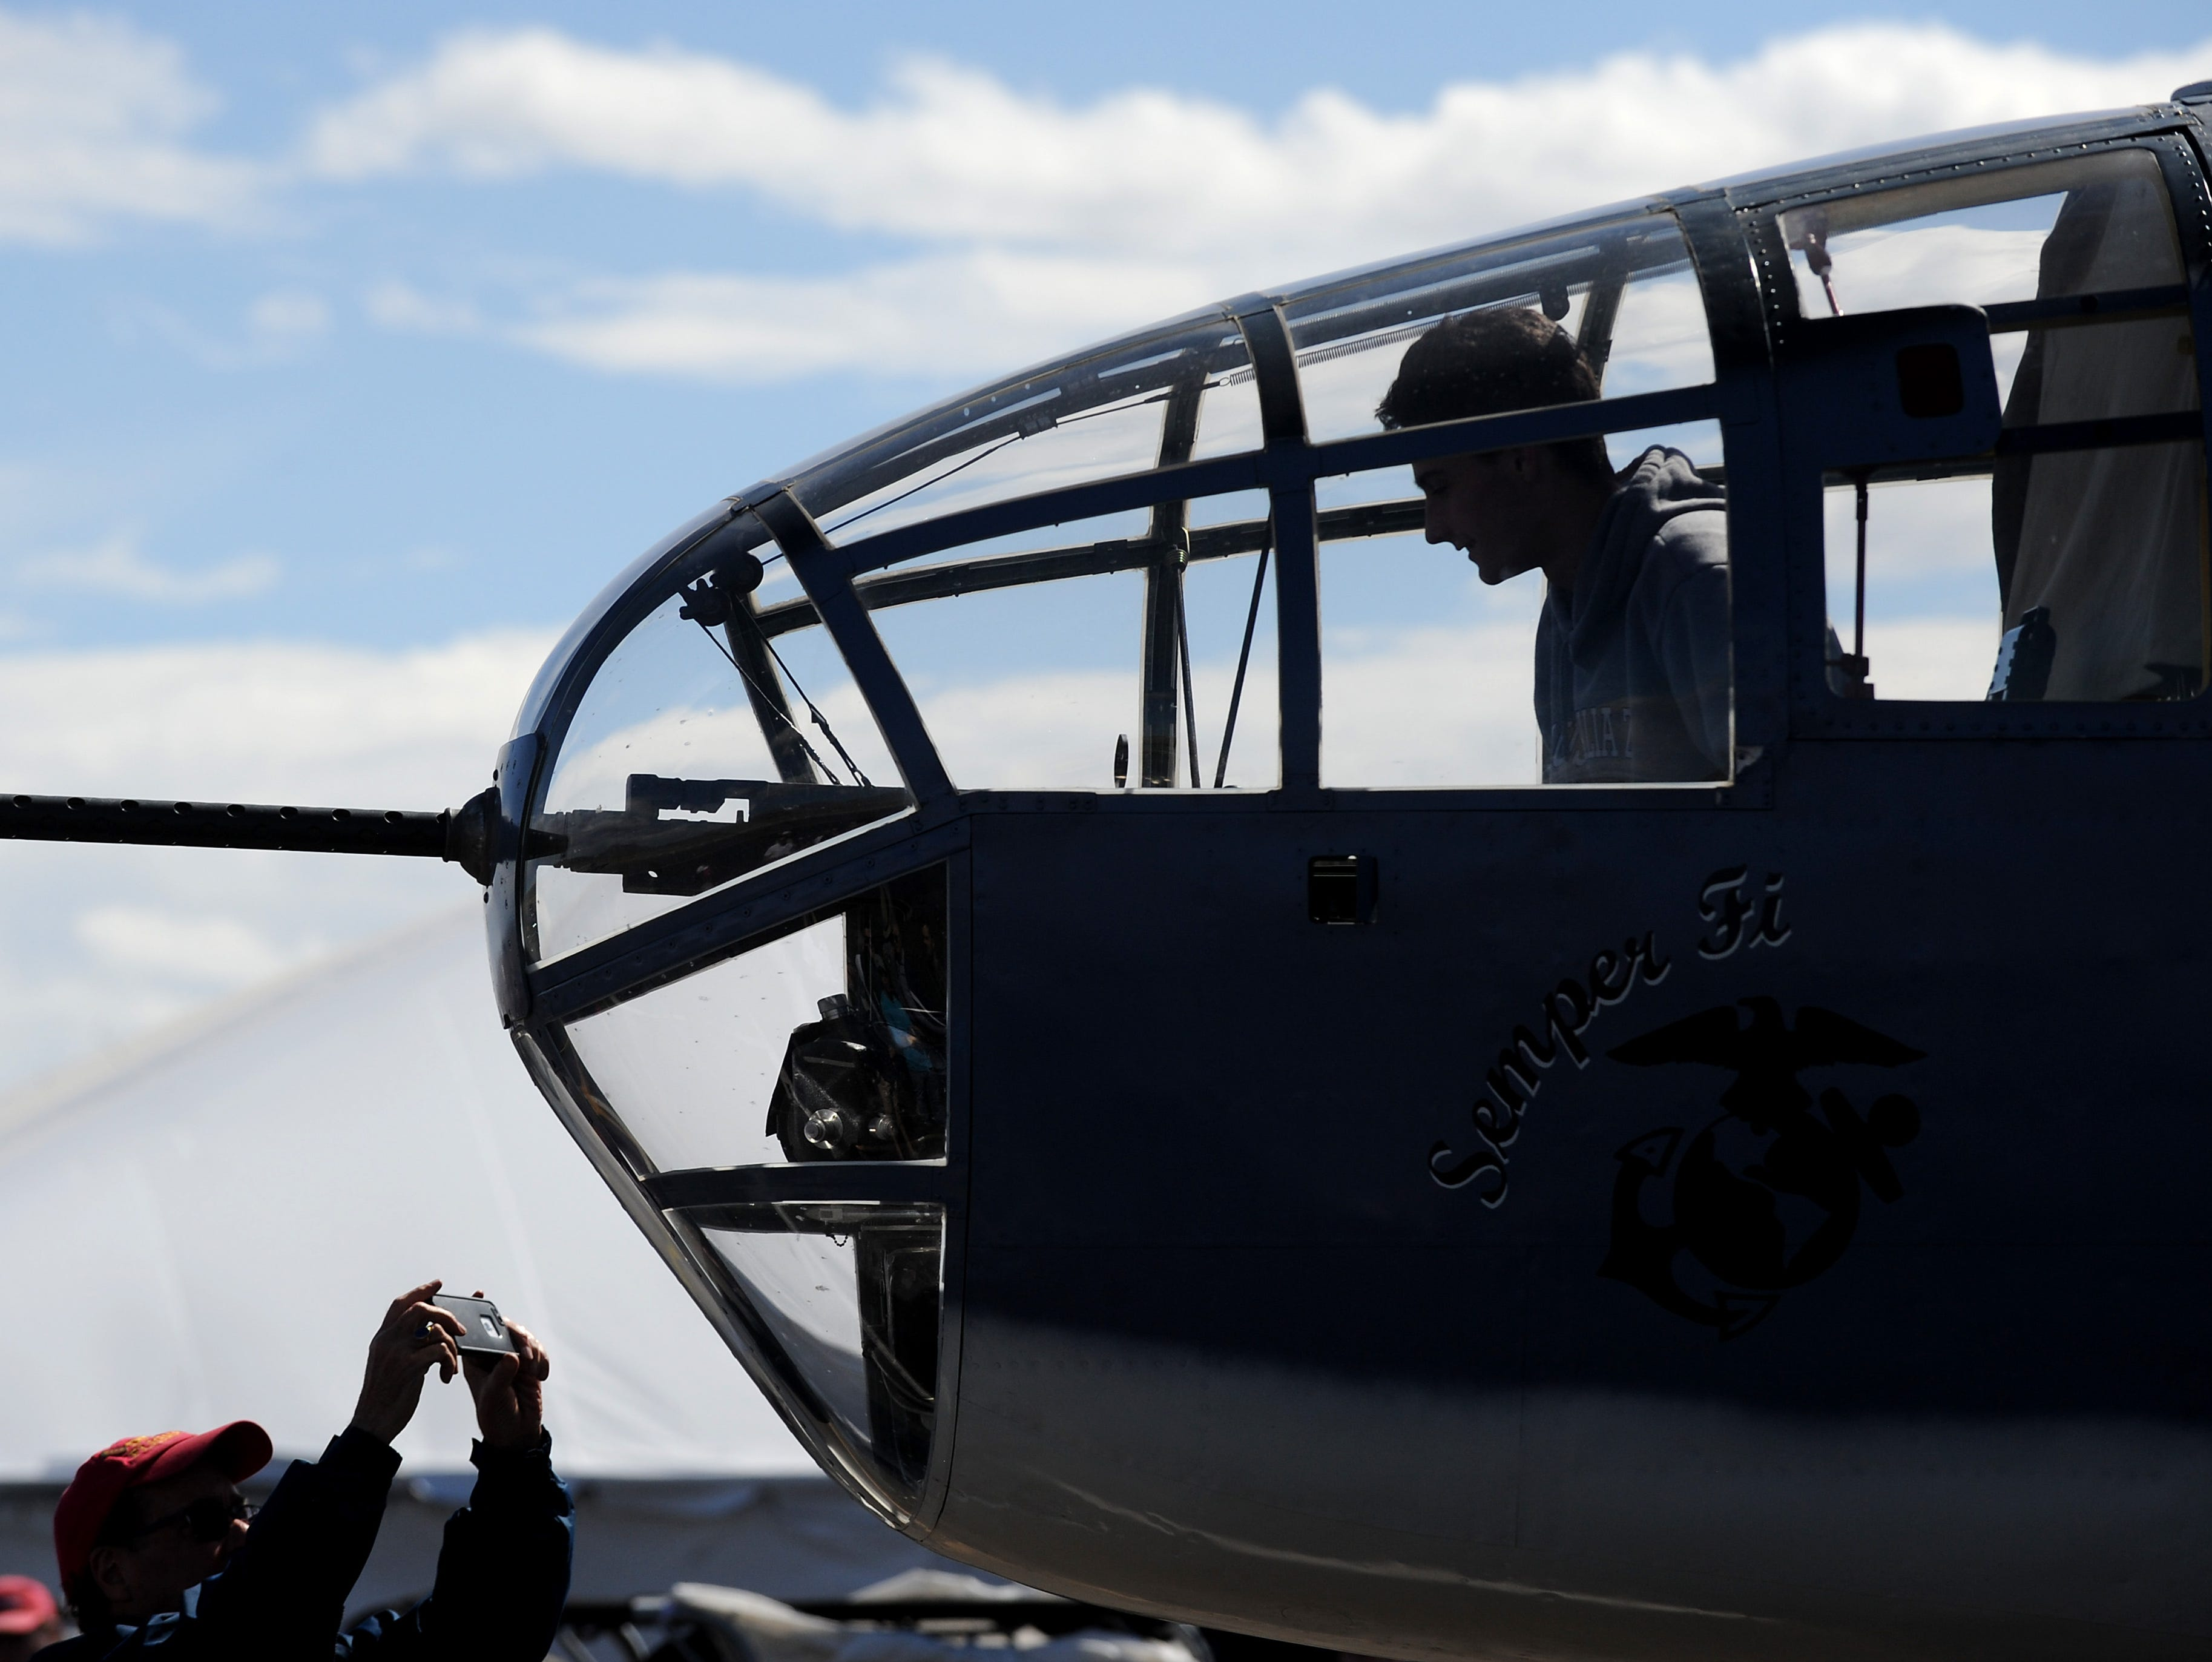 A lucky spectator gets his photo taken in the front gunner position in a PBJ B-25 Marine Bomber at the STIHL National Championship Air Races at Stead Airport north of Reno on Sept. 15, 2018.